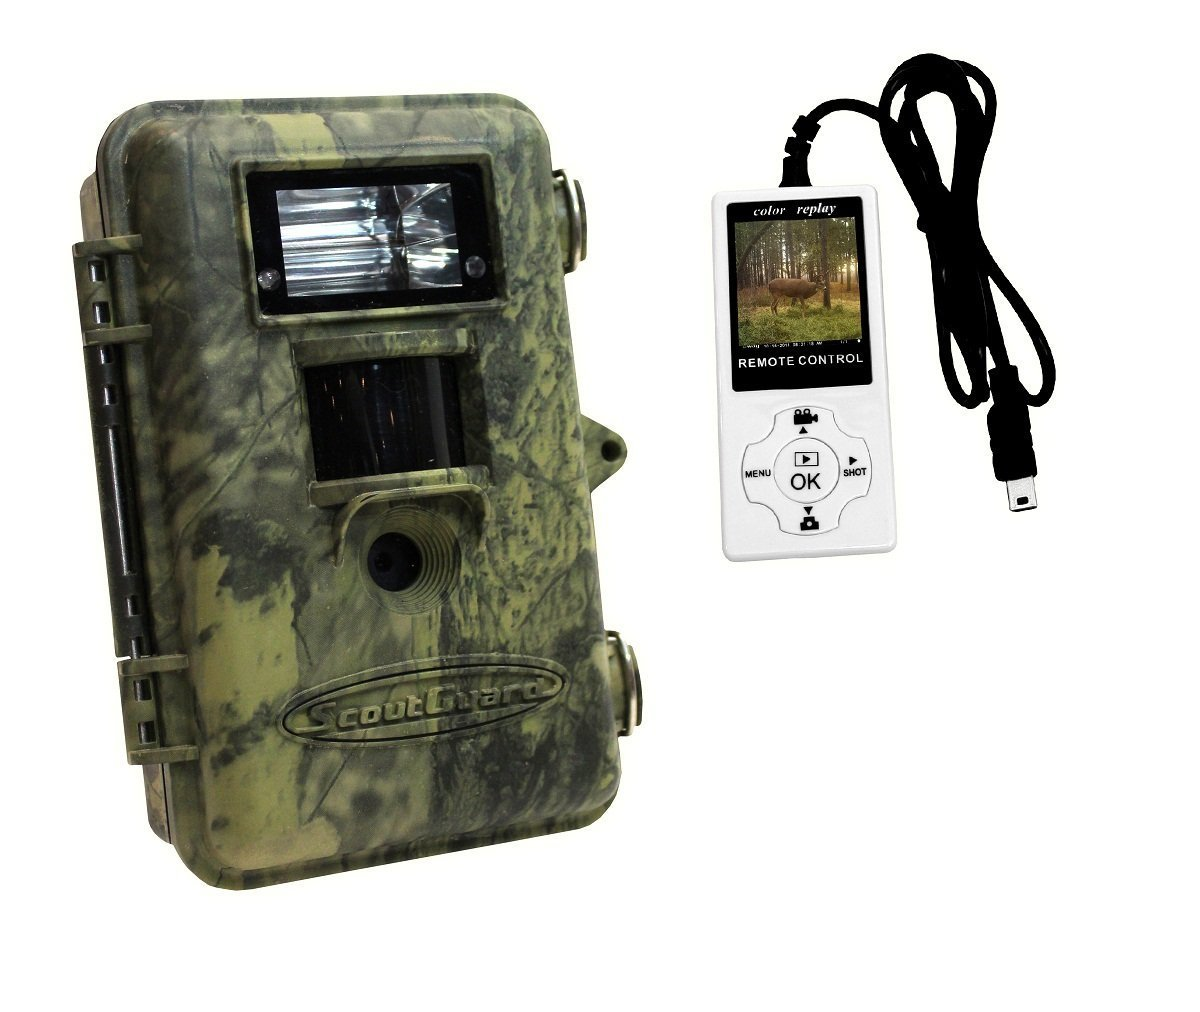 ScoutGuard SG565F-8M Night Game Camera